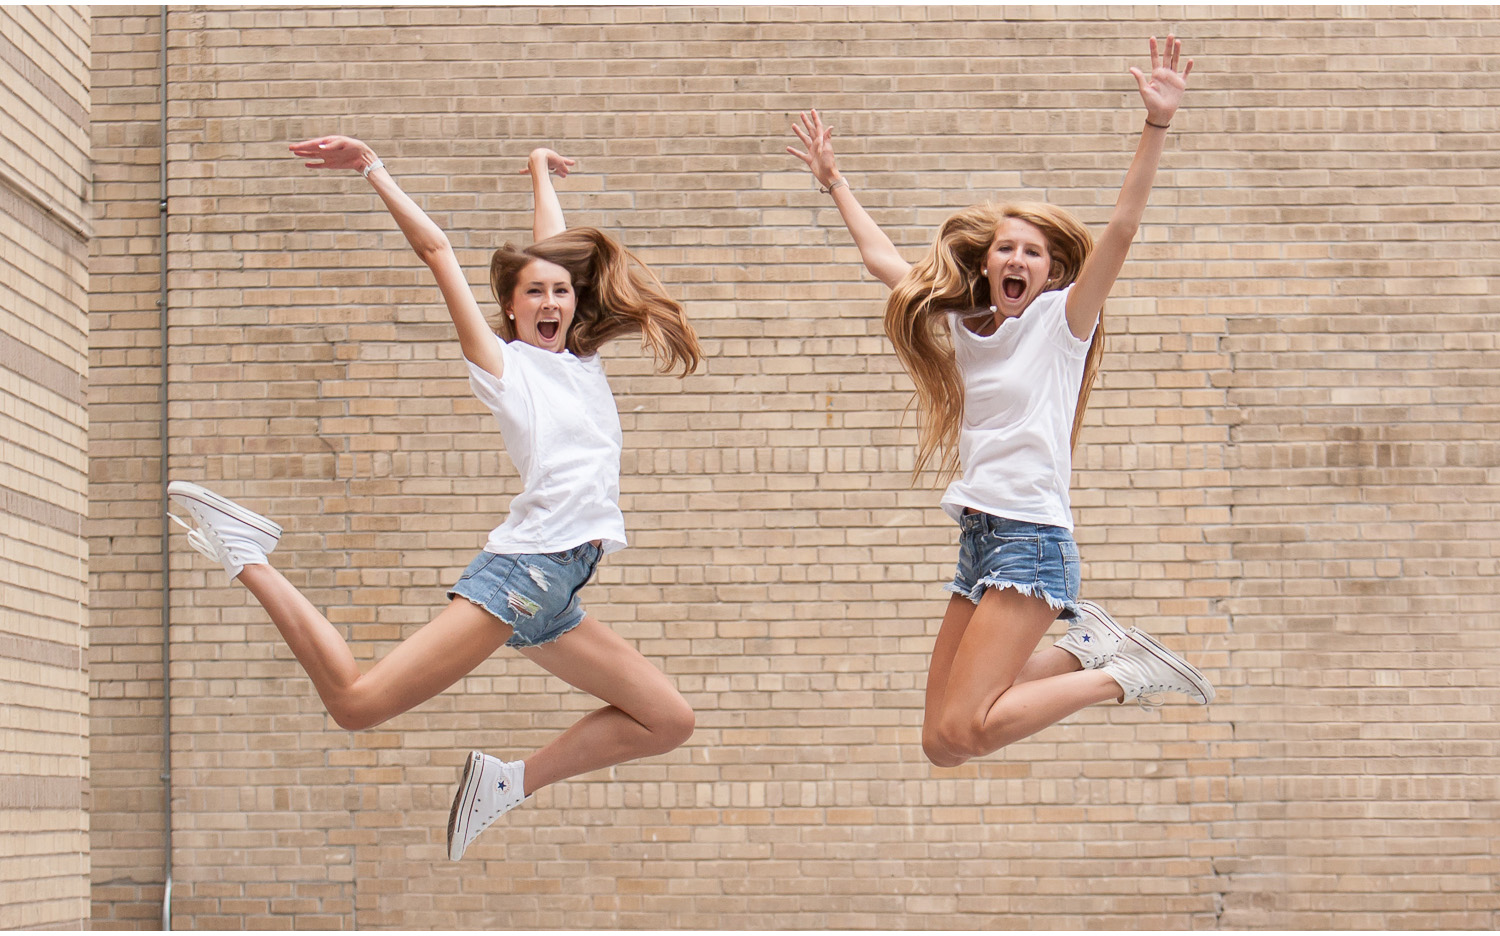 Downtown Denver, jumping best friends senior portrait session with photographer Jennifer Koskinen, Merritt Portrait Studio.